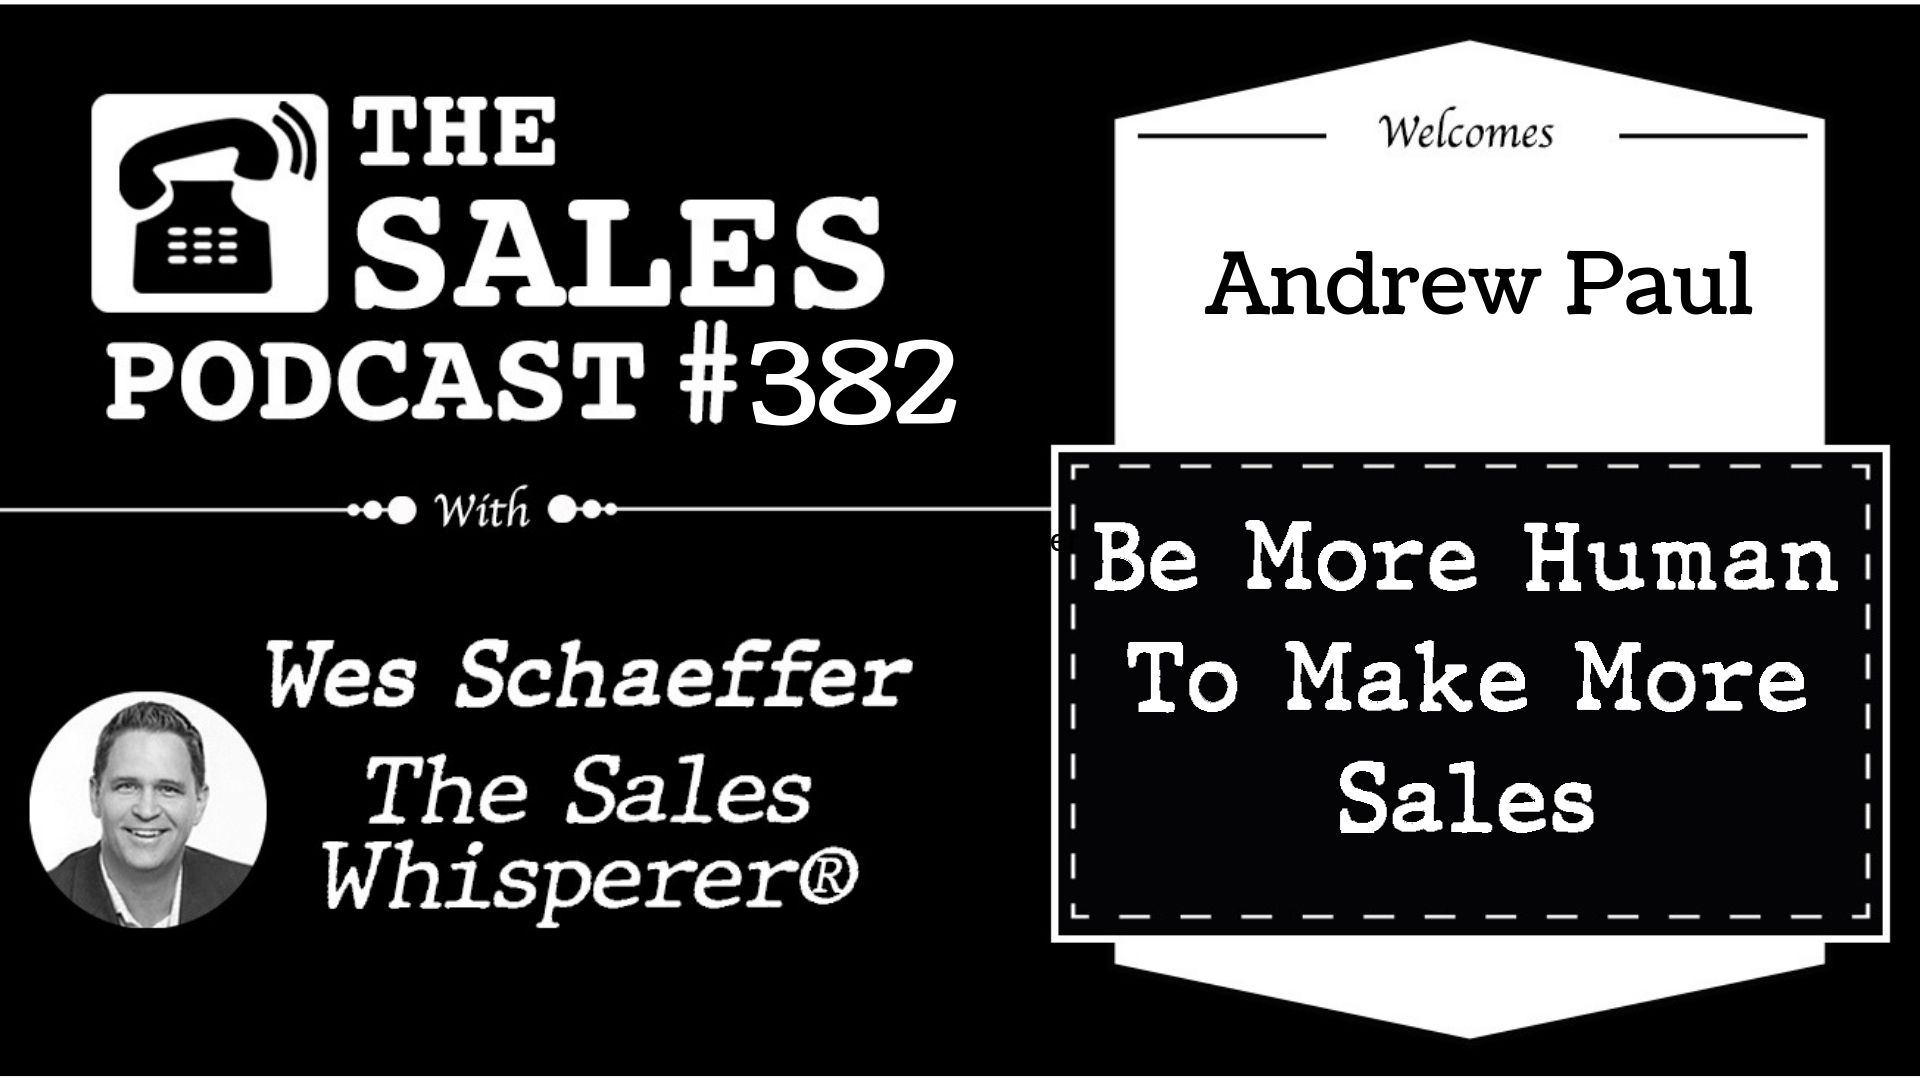 Be Yourself To Make More Sales, With Andrew Paul on The Sales Podcast